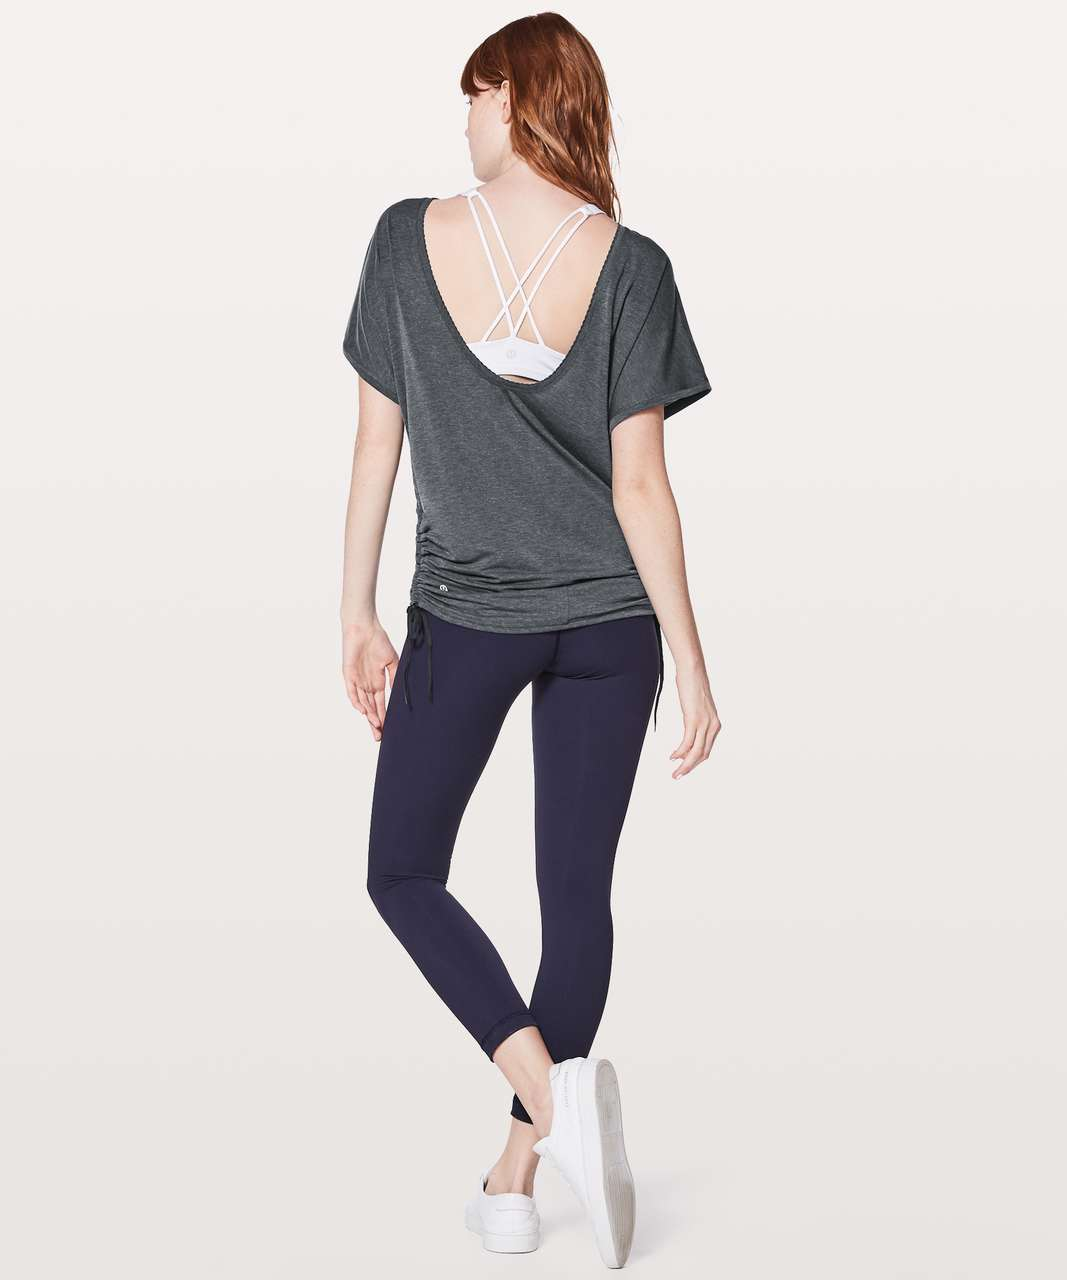 Lululemon Tied To It Tee - Heathered Midnight Navy